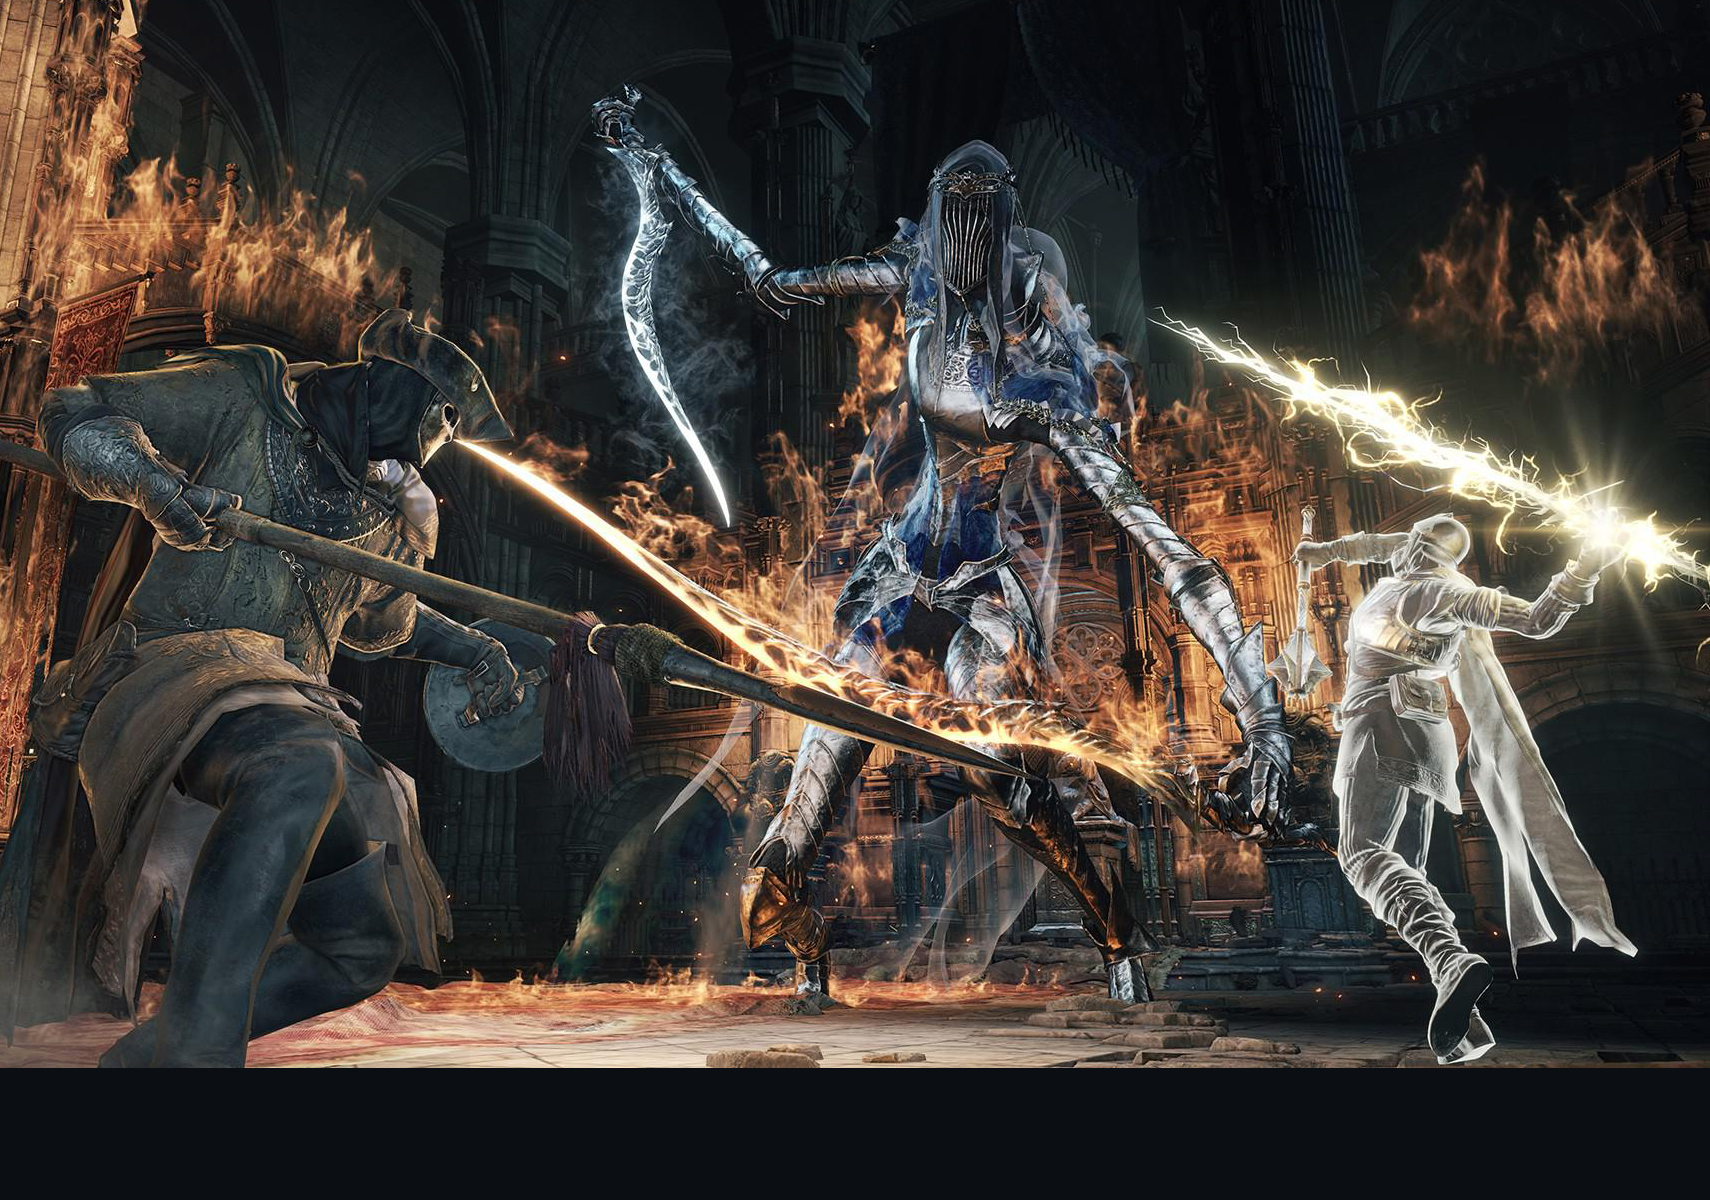 Photo of head to head: Here are the system requirements of Dark Souls 3 and its main duplicate